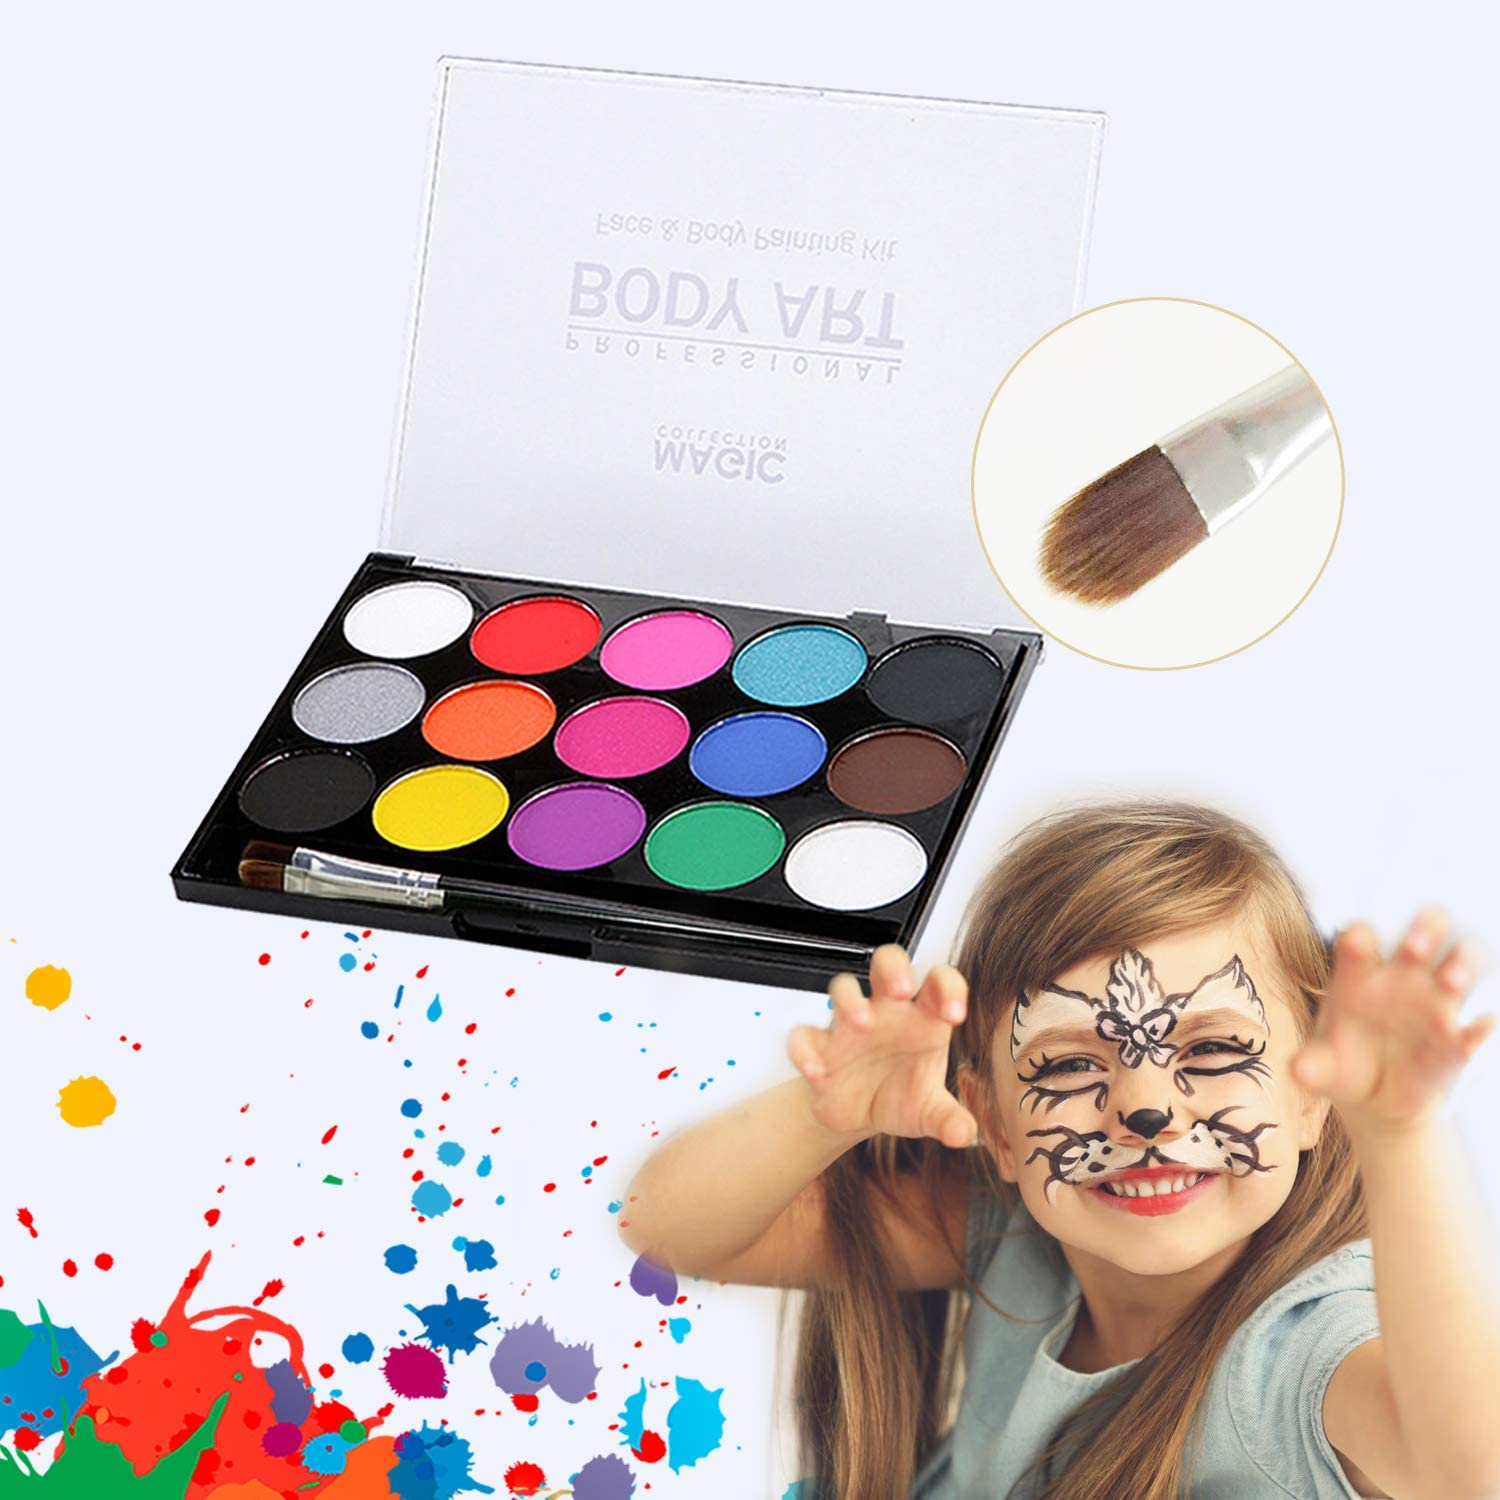 Face Paint Kit-Water Based Paints for Cosplay Makeup - Face Painting Kits for Kids and Adult - Professional Face Paint Set - Paint Makeup Set Face Body Non-Toxic Paint with 2 Brush